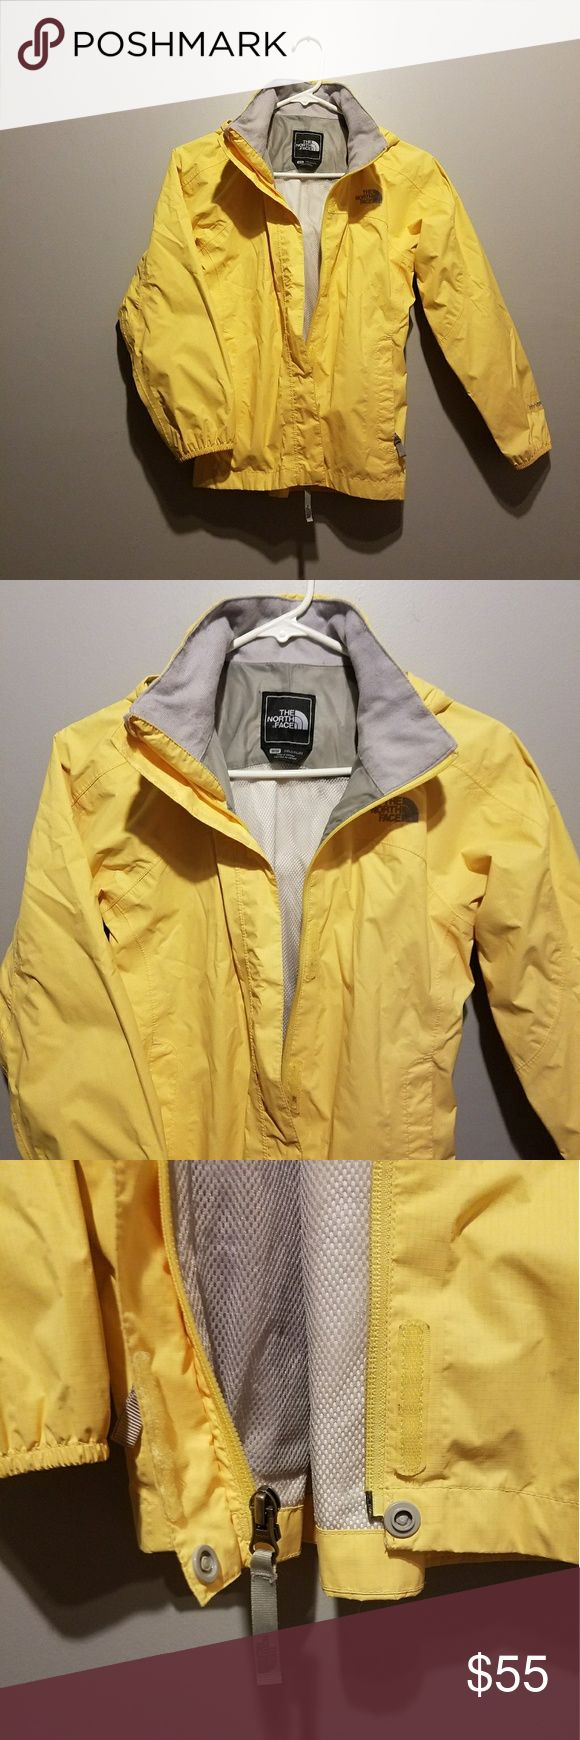 Girls M North Face Yellow Rain Jacket Windbreaker Yello rain jacket or windbreaker from the north face. Excellent condition. You can put away hood in collar. Worn less than 10 times before it was outgrown. Offers welcome. The North Face Jackets & Coats Raincoats